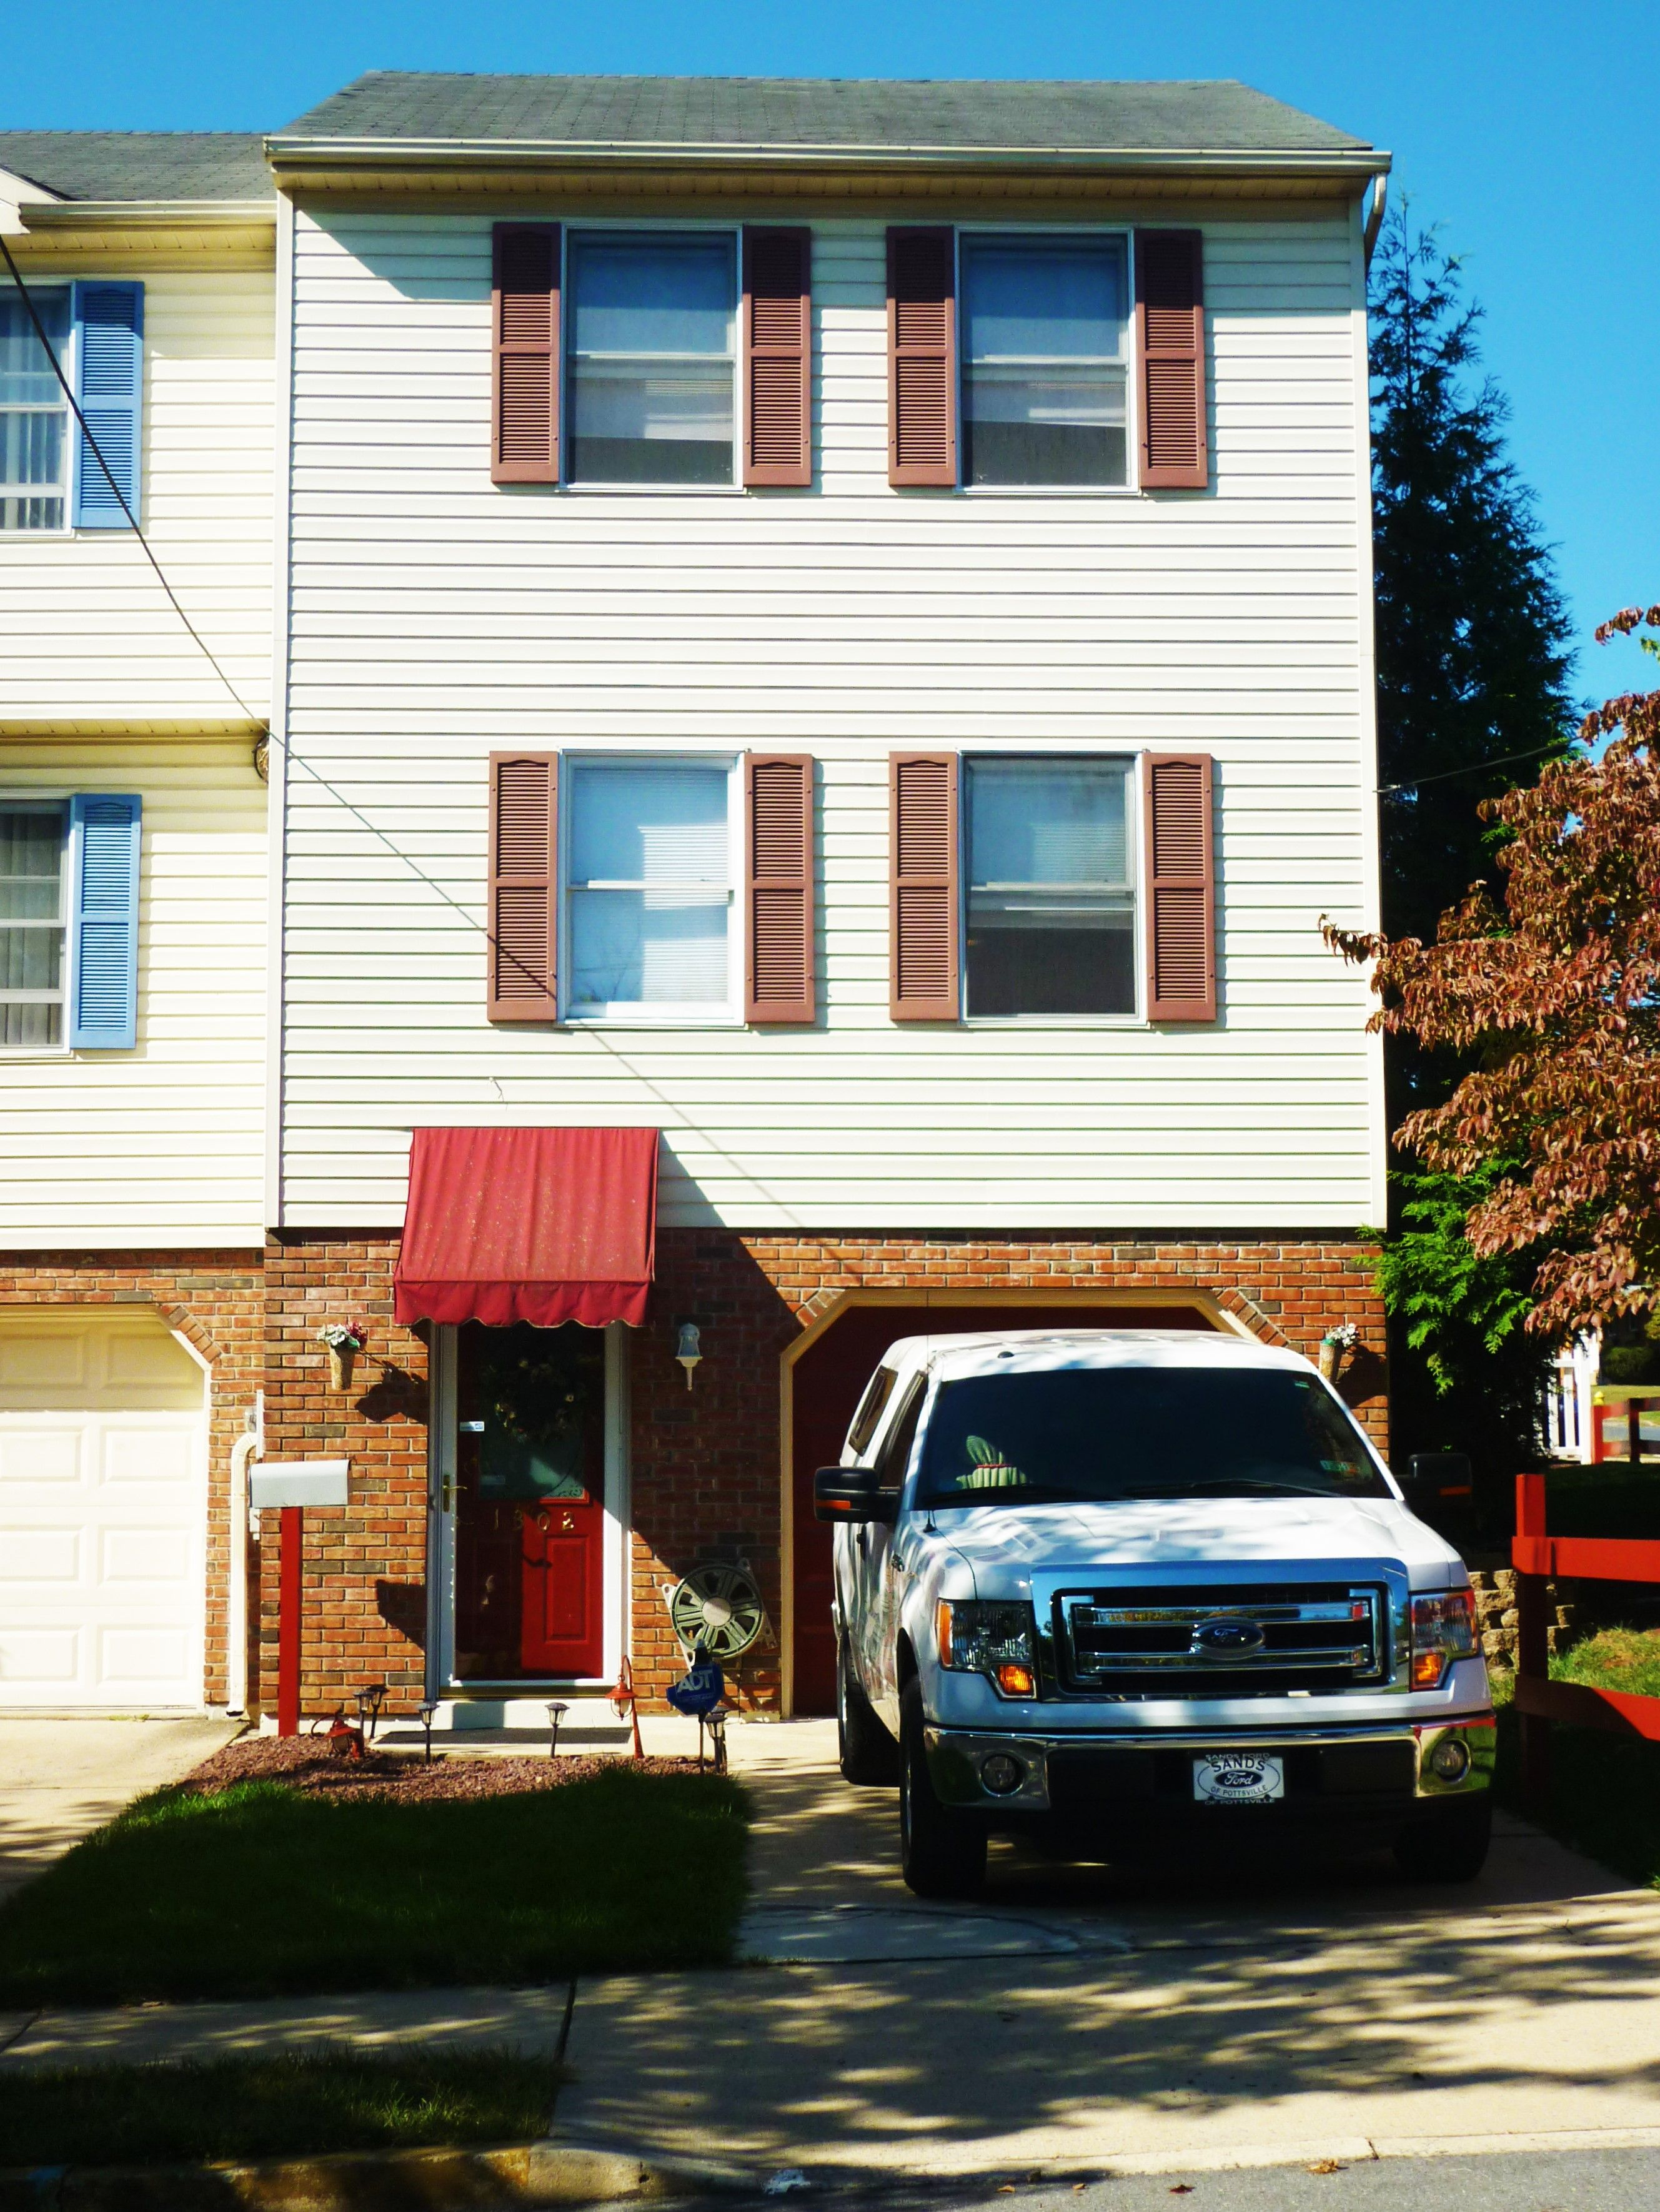 2 Bedroom Townhouse for sale. South Side Allentown. Real